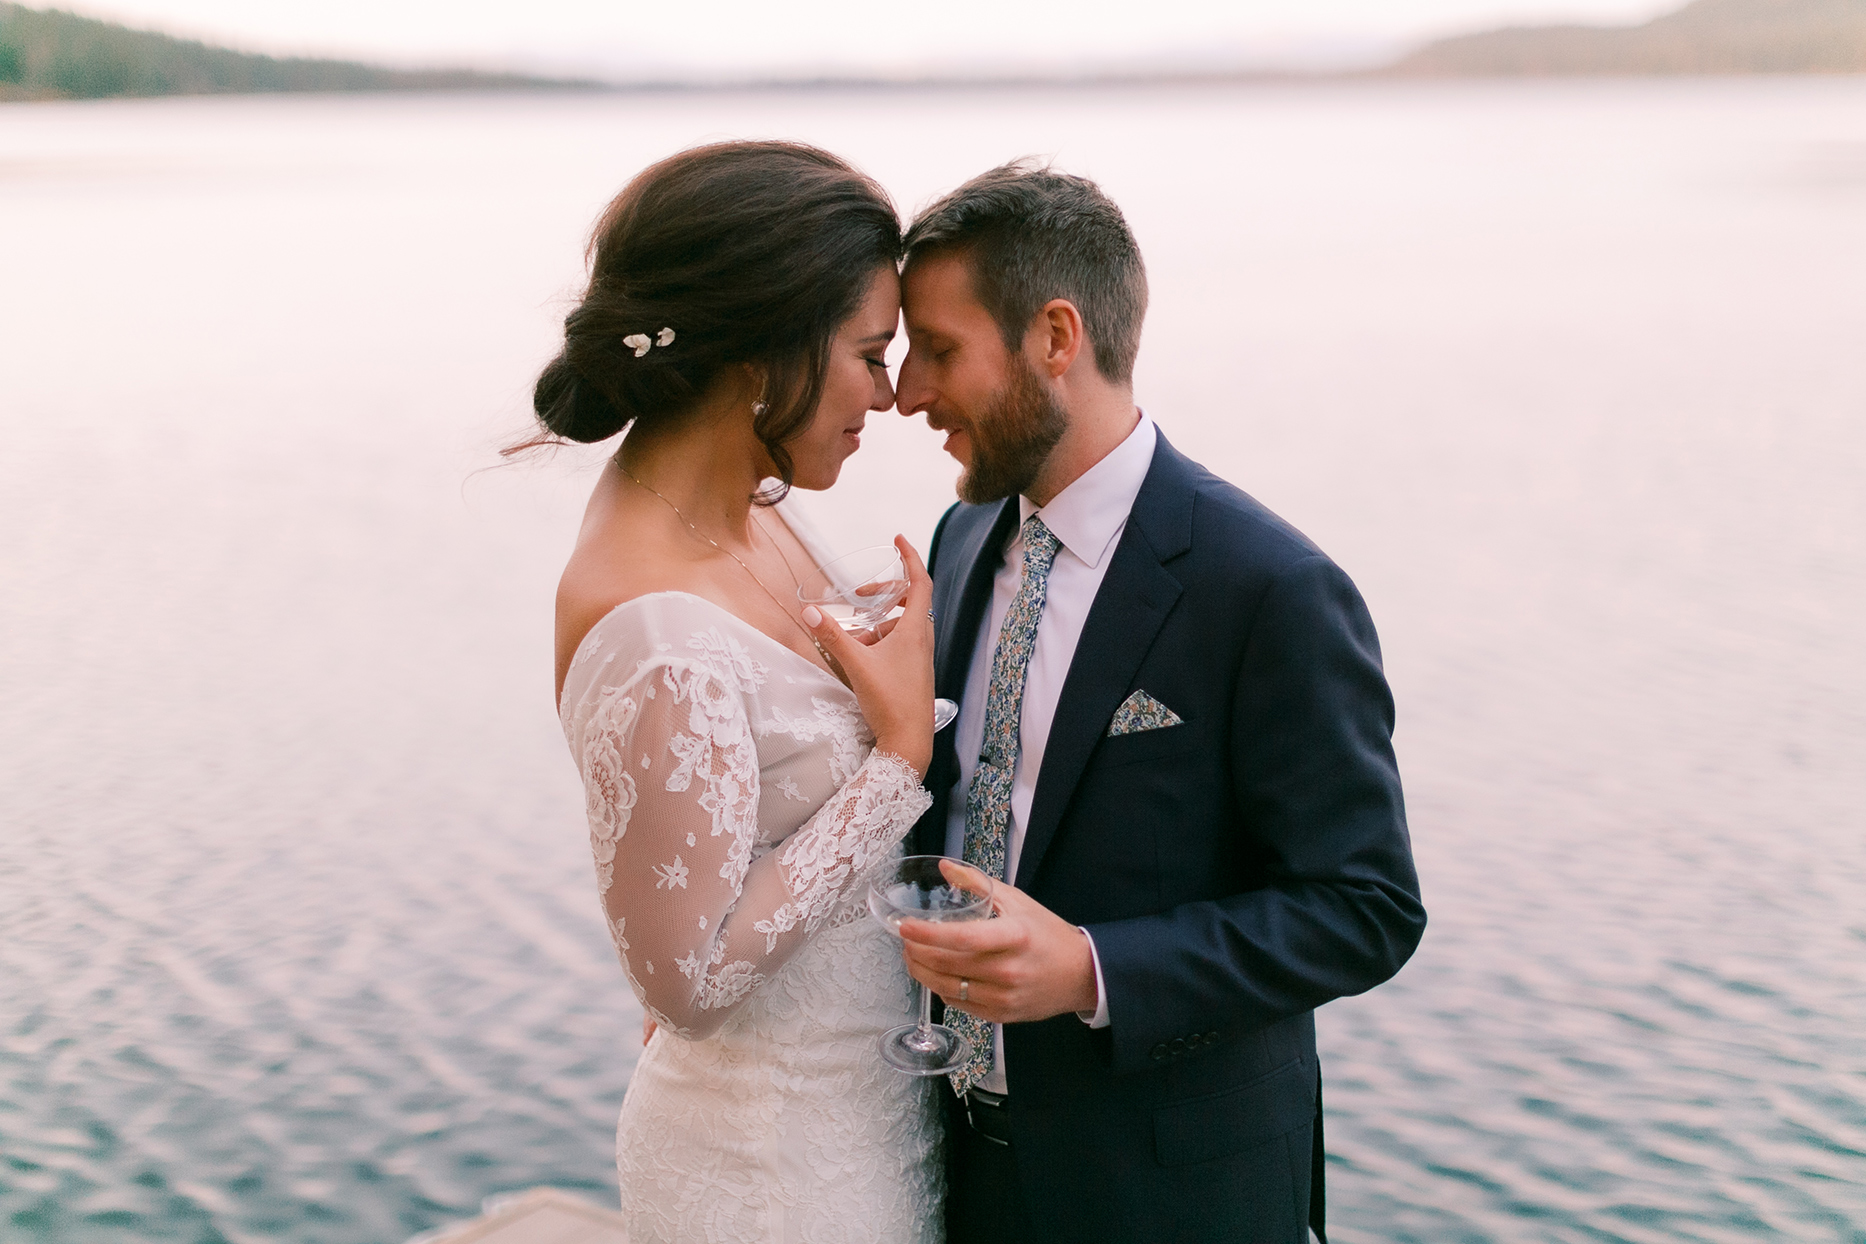 wedding couple embracing while holding champagne glasses by lake